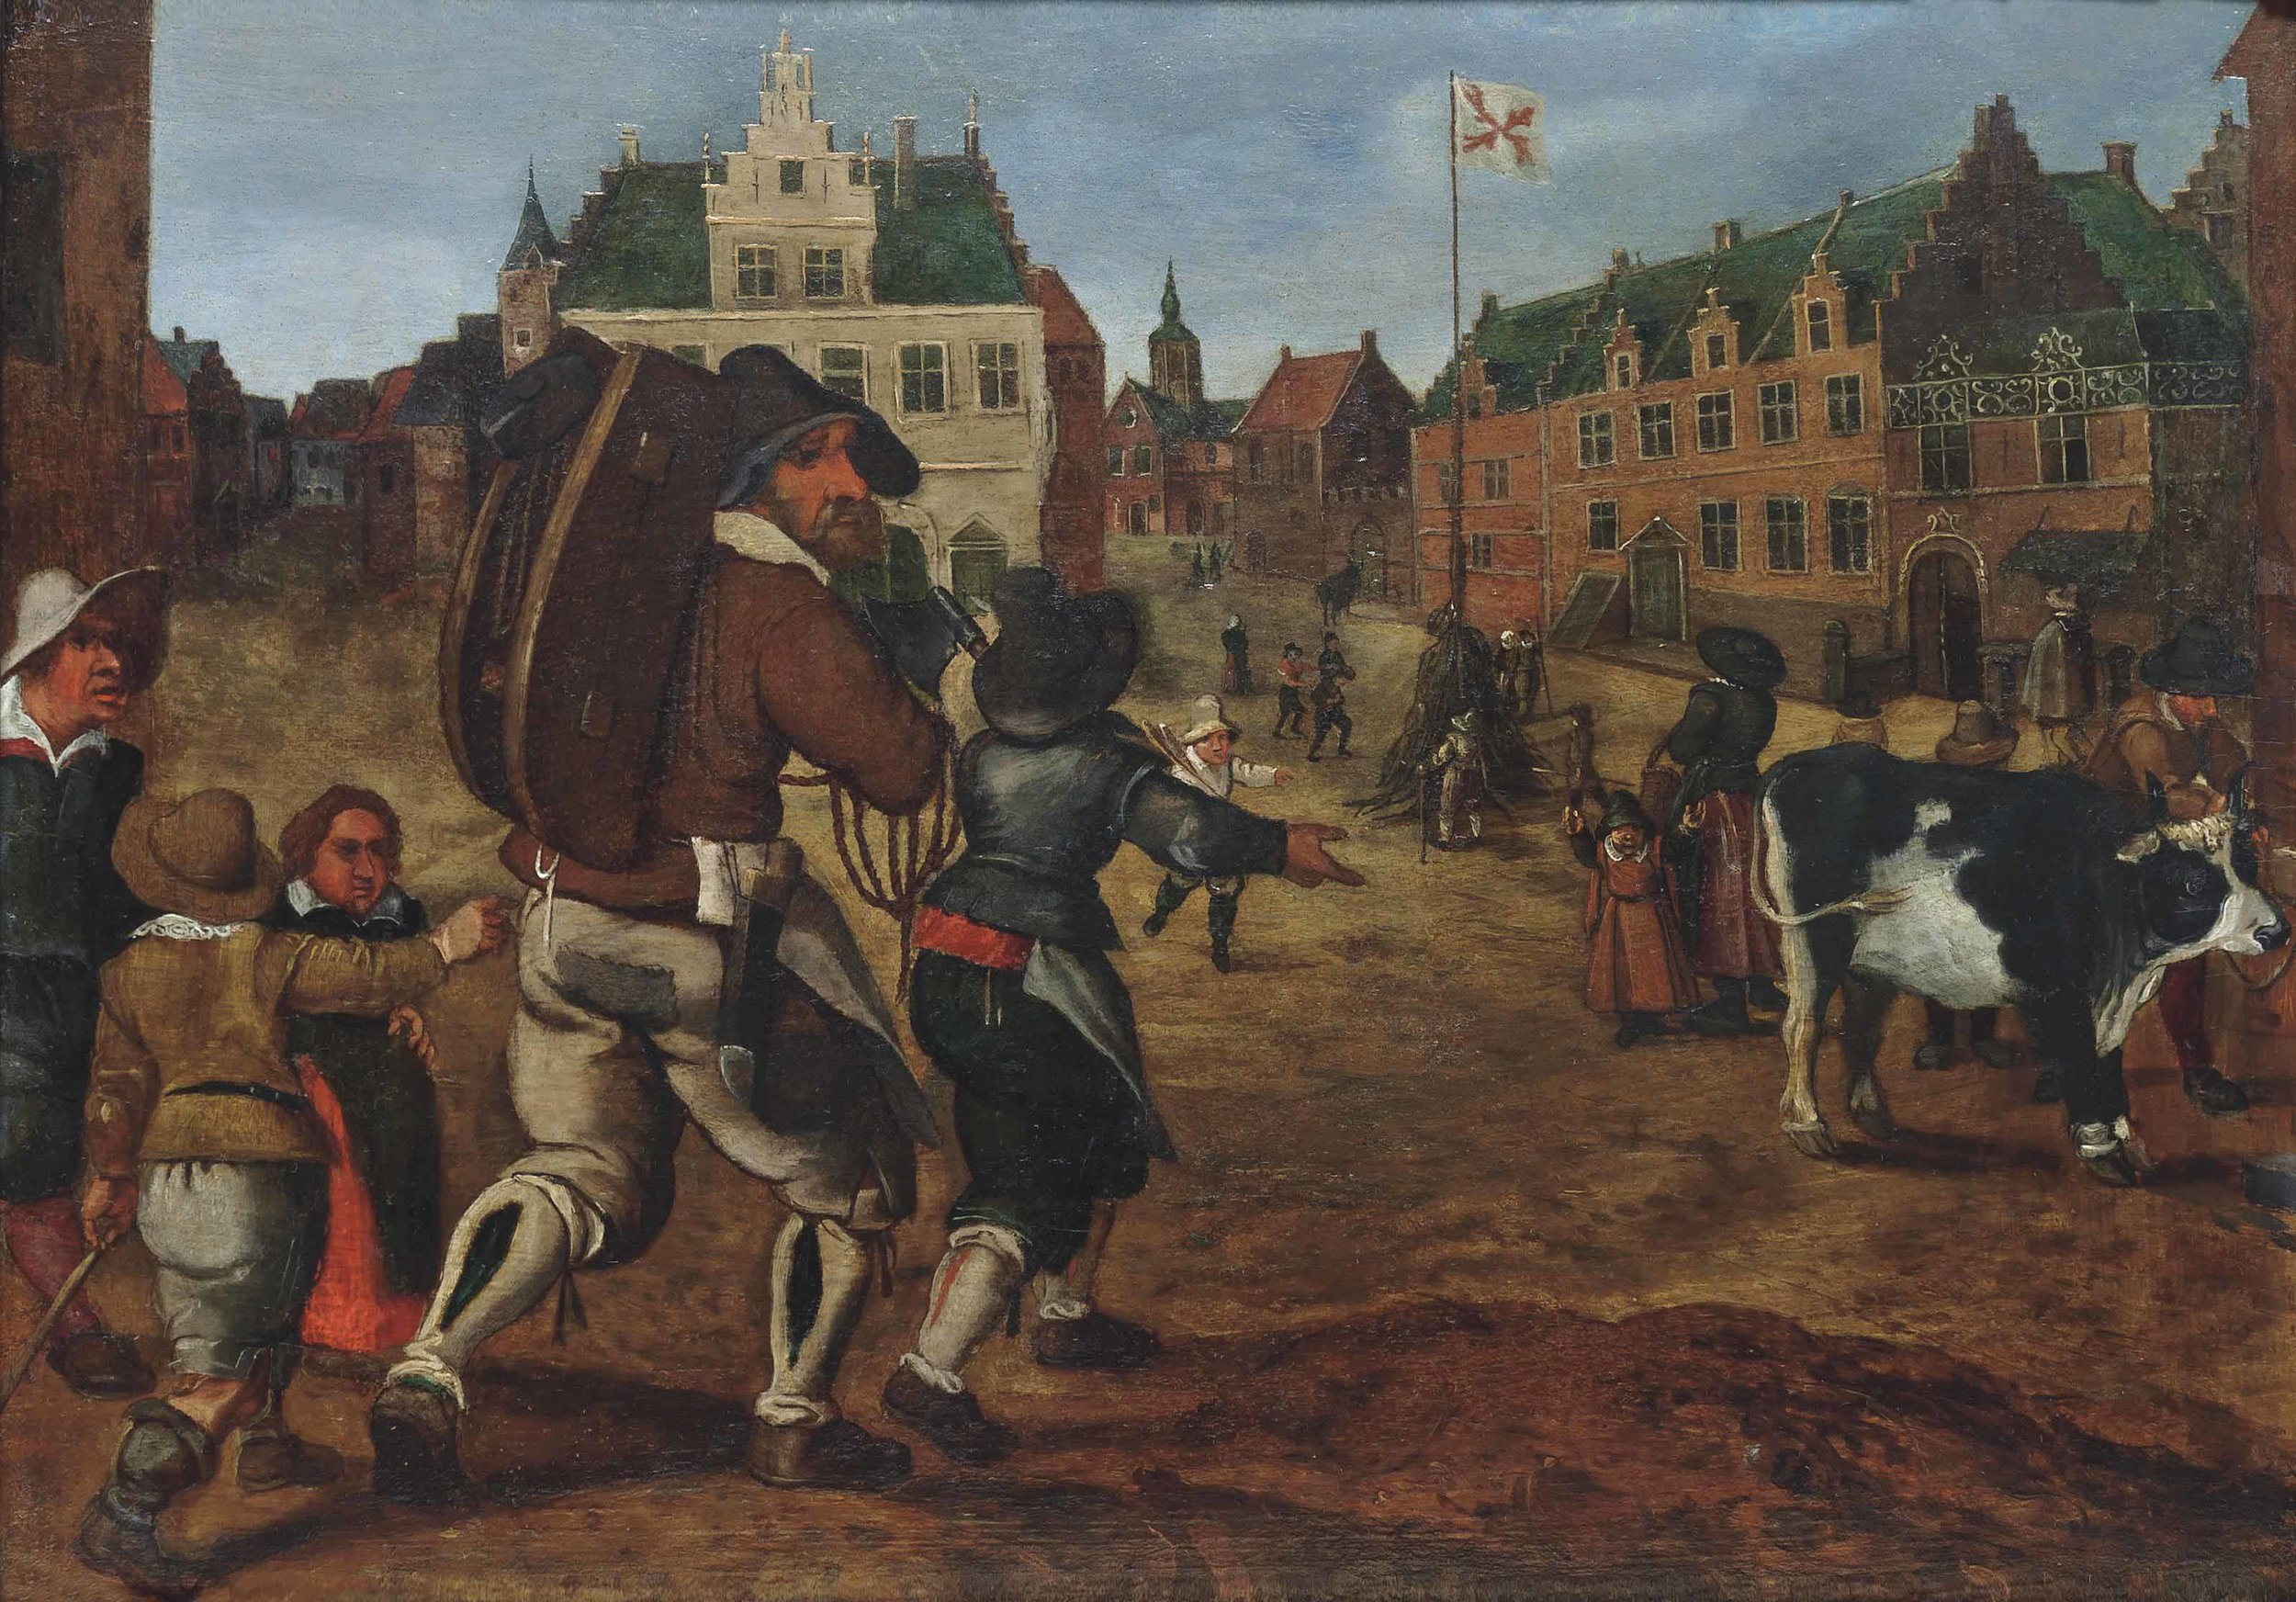 A Townscape with Figures on the Market Square, attributed to Sebastian Vrancx.